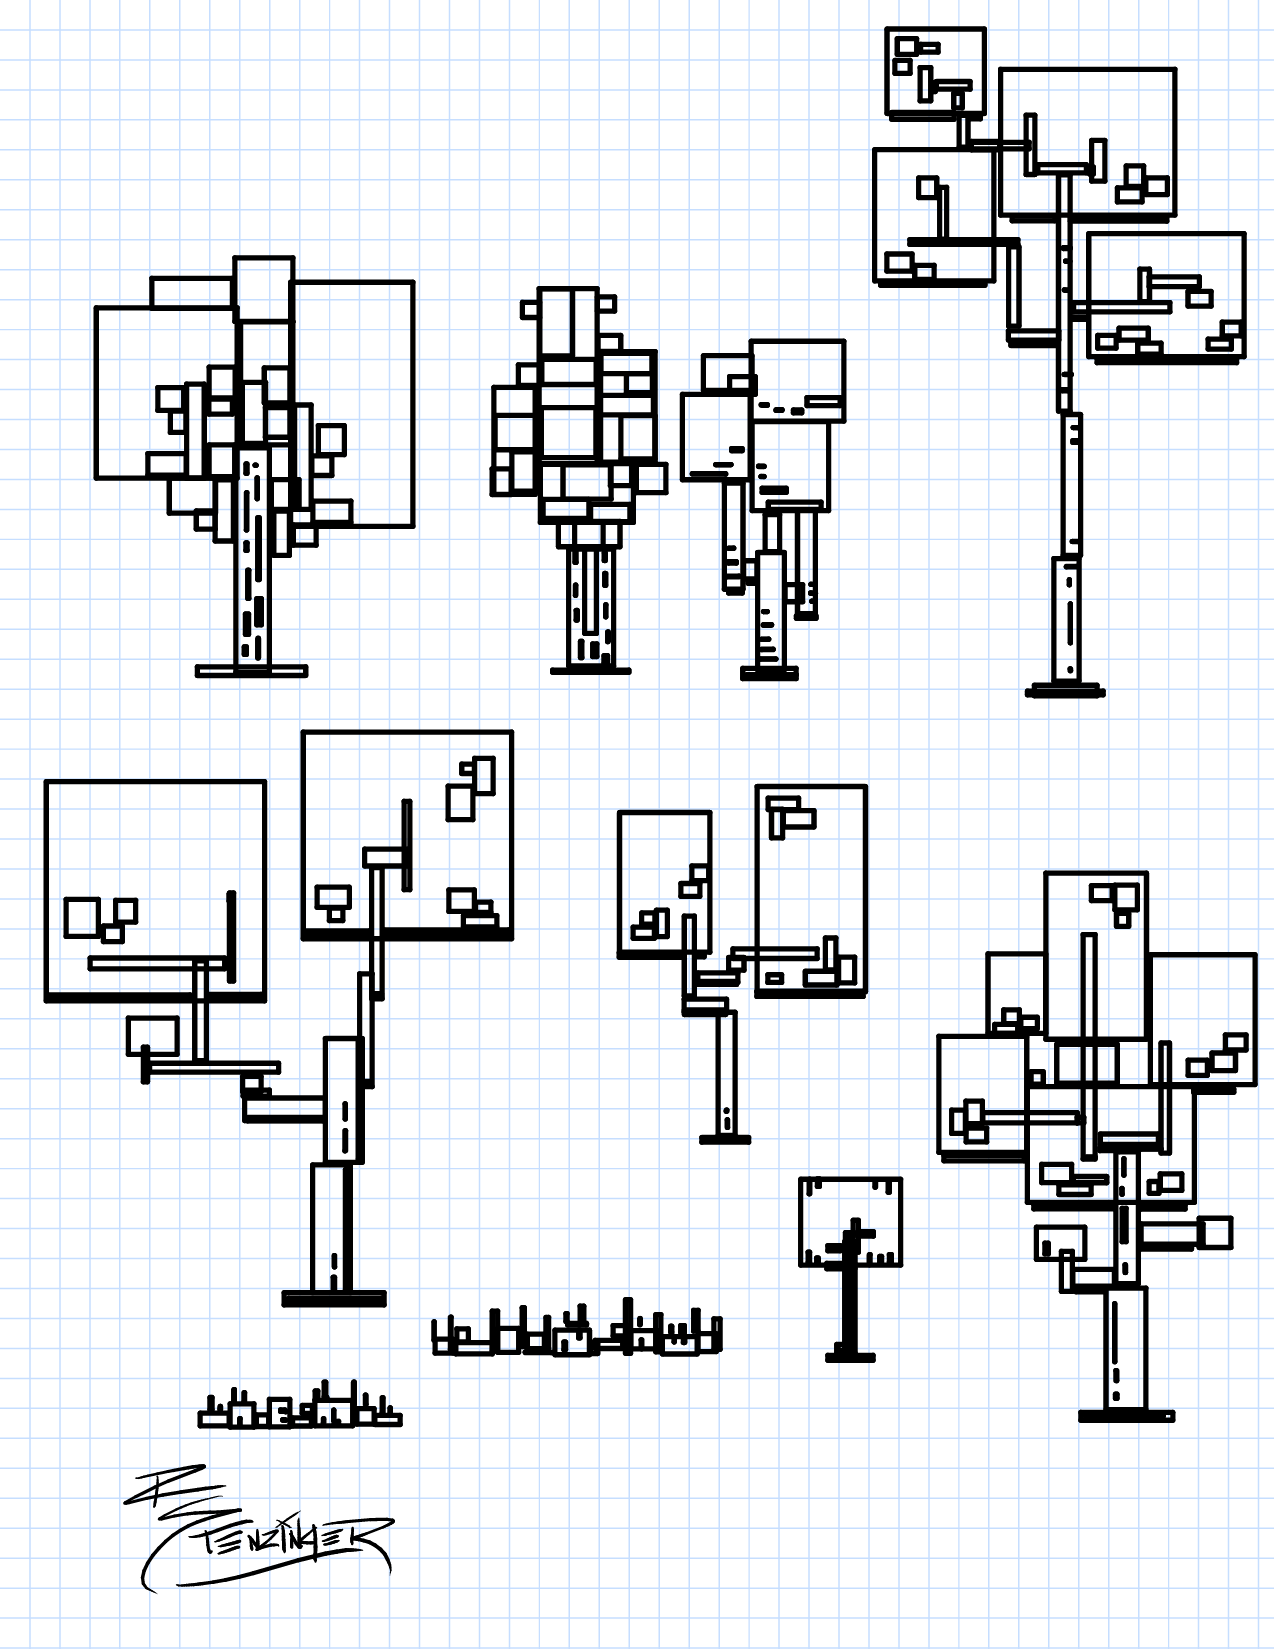 Exploring how I could draw trees using only rectangles.